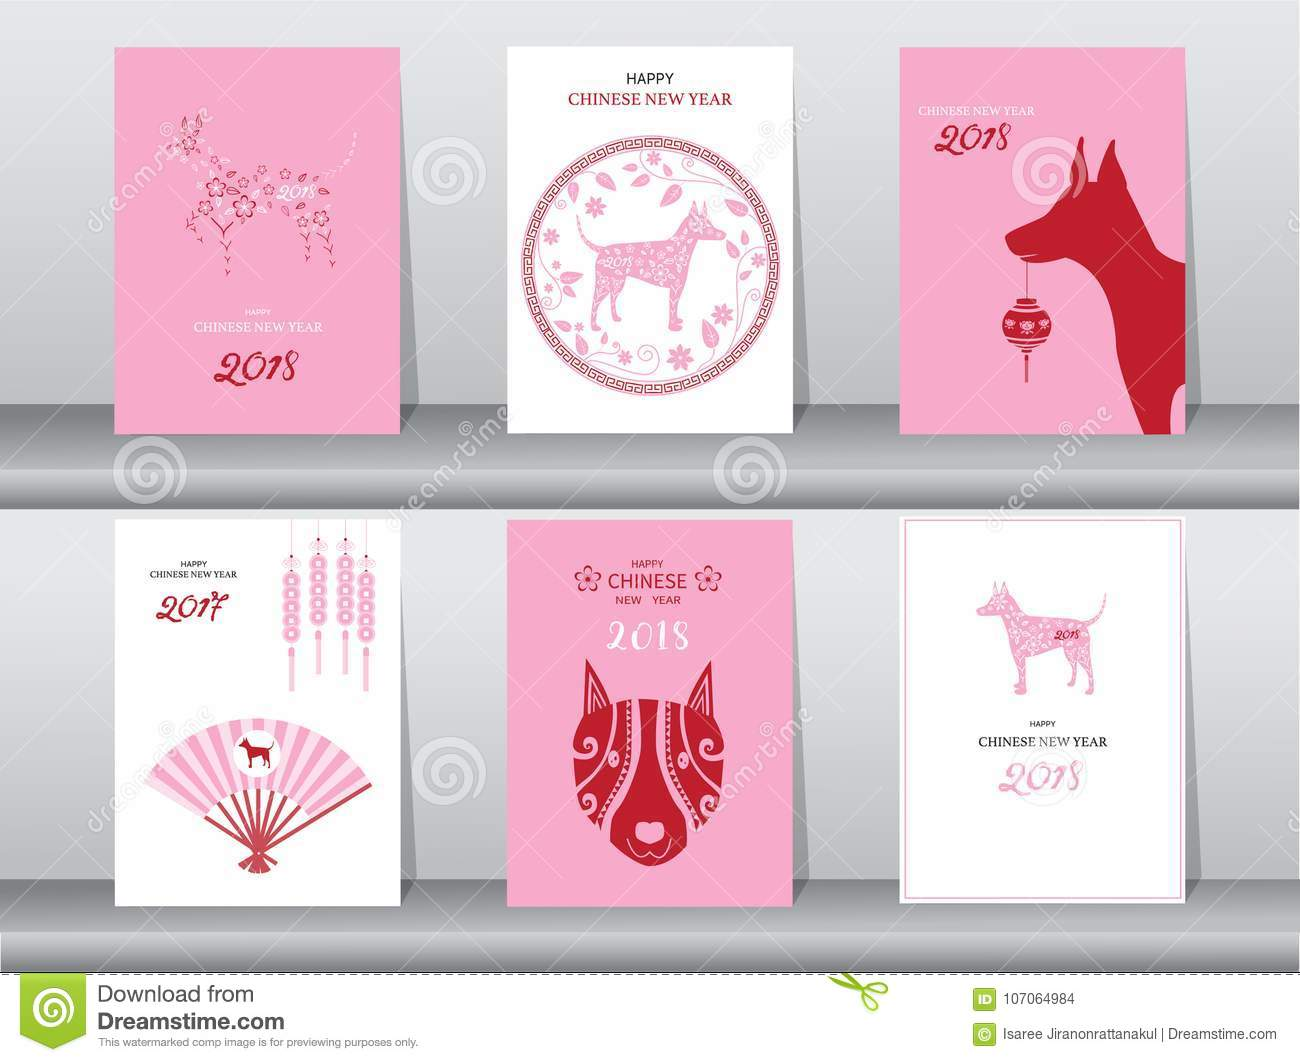 collection of chinese new year cardspostertemplategreeting cardsanimals